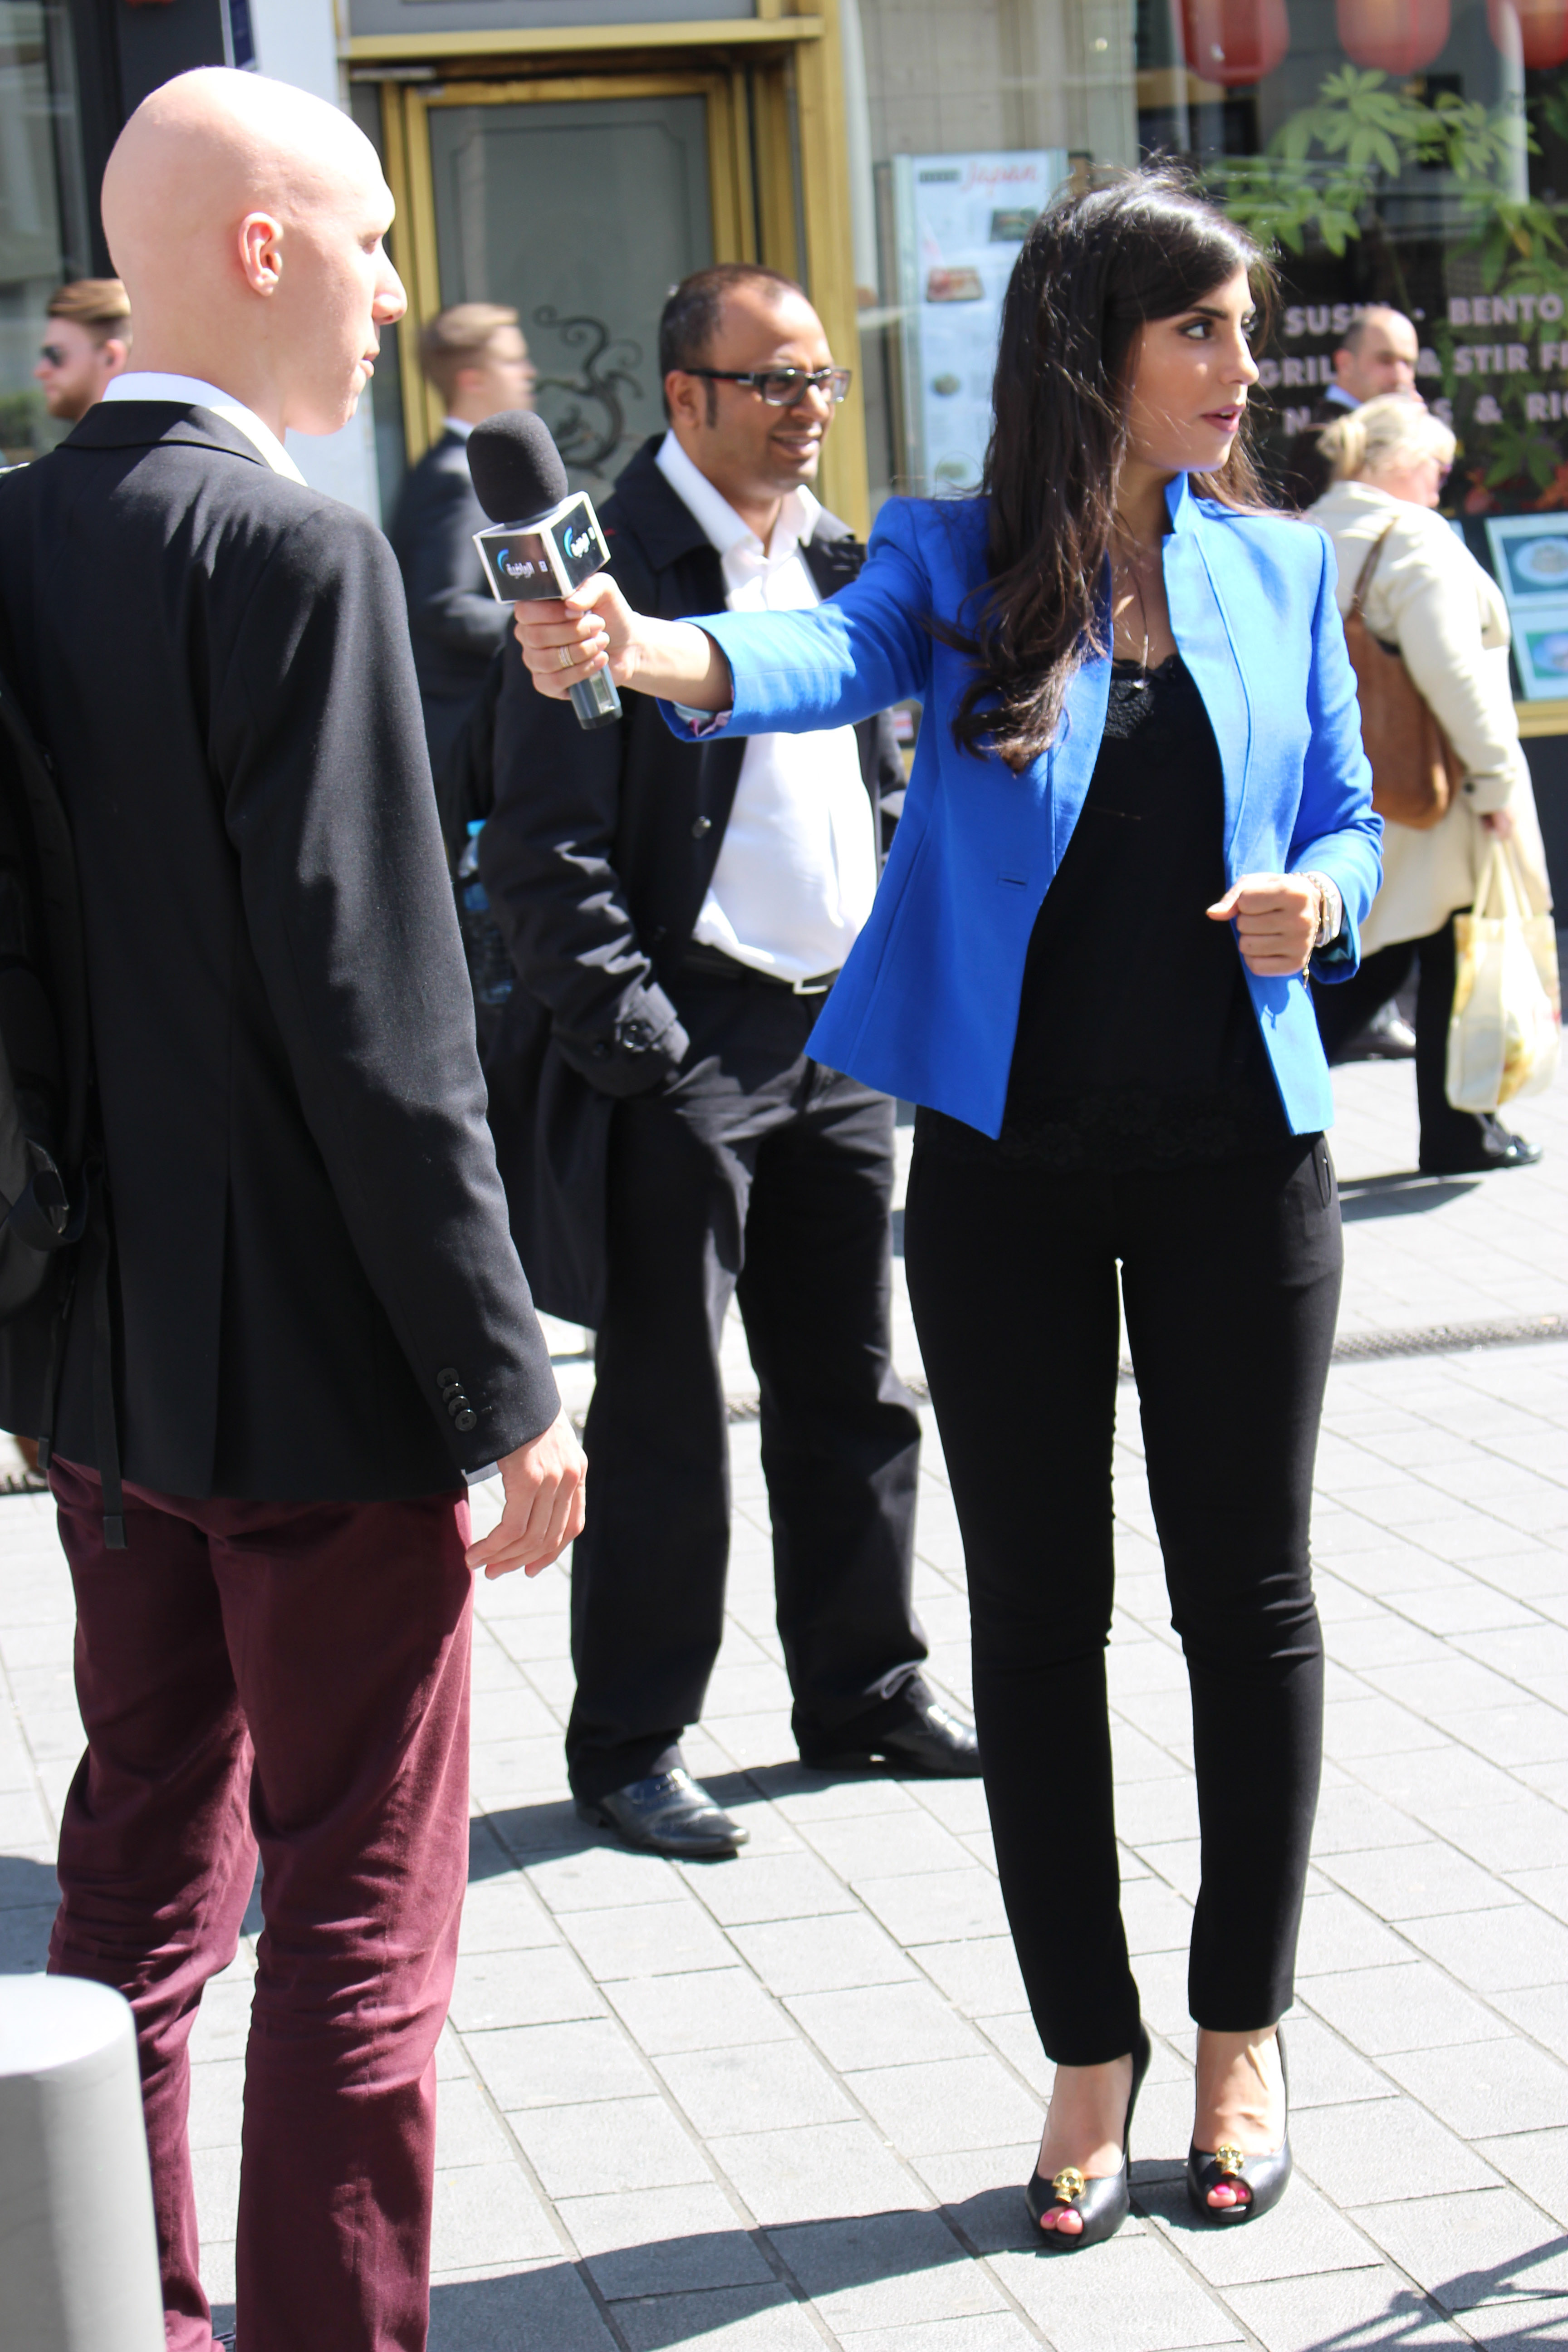 reporter in blue